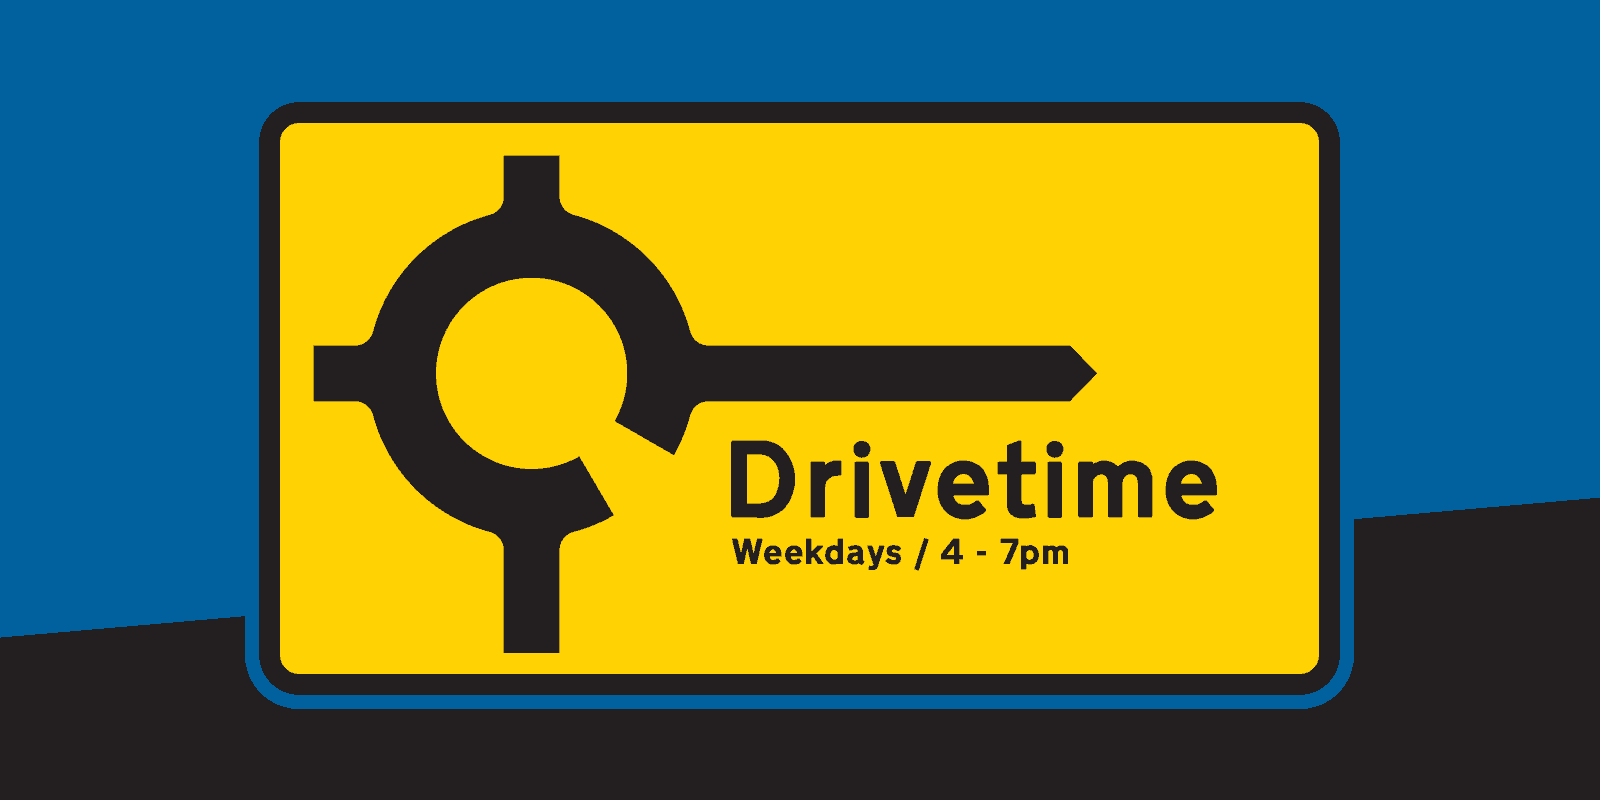 Drivetime on Gateway 97.8